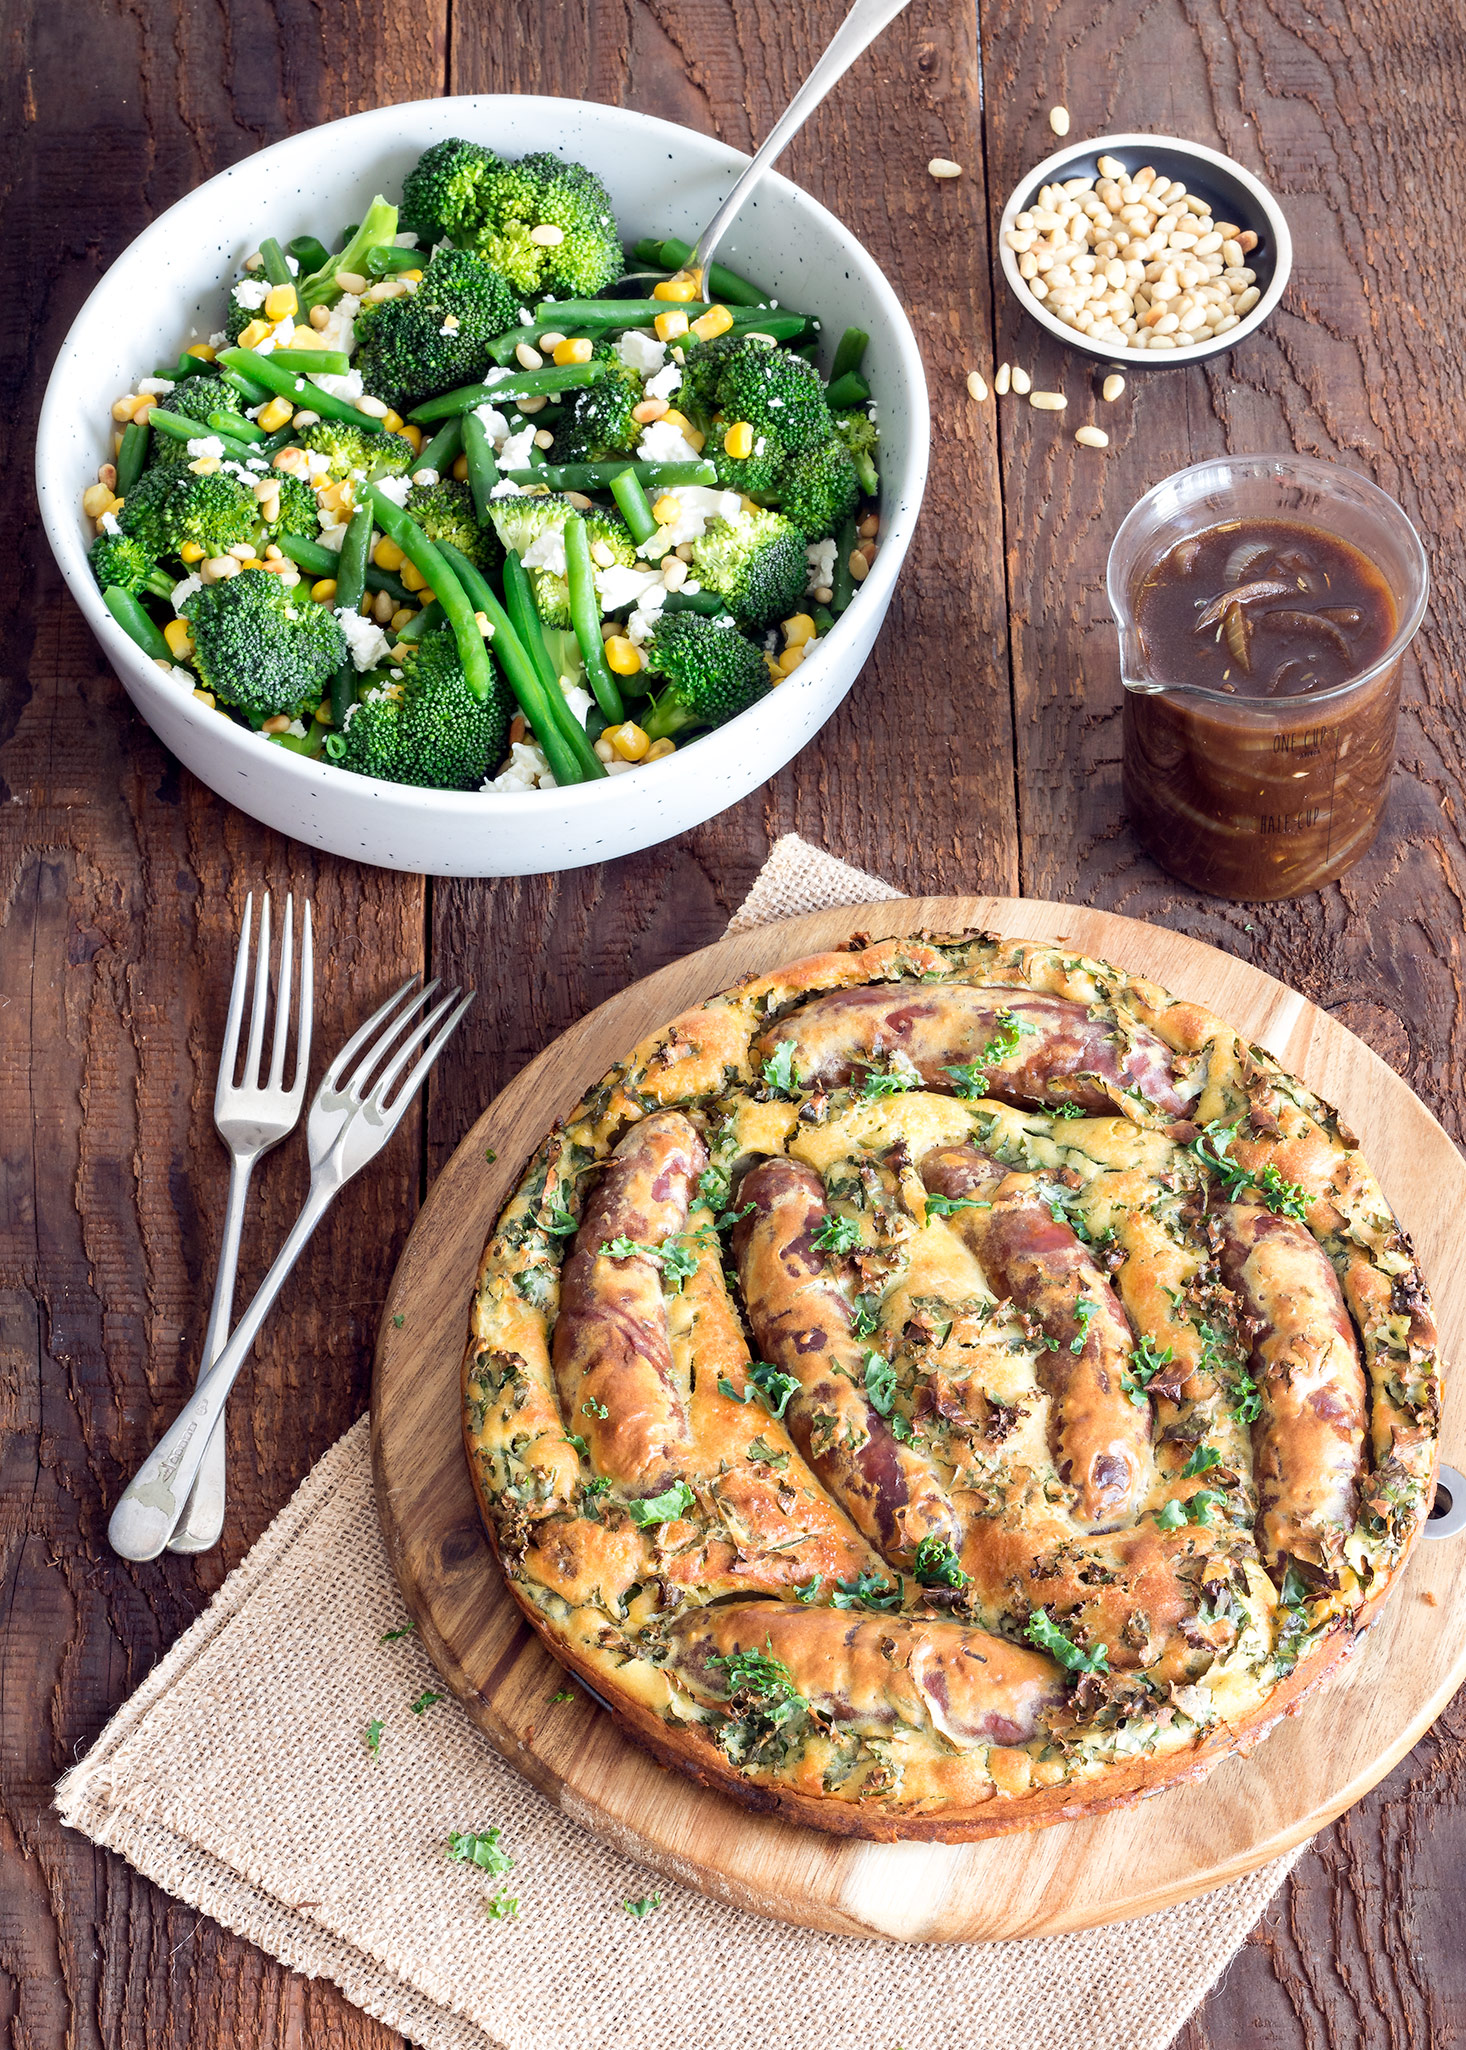 Toad in the hole is the perfect winter warming meal. Step it up a notch with caramelised onion gravy and steamed veggies topped with feta and pinenuts.